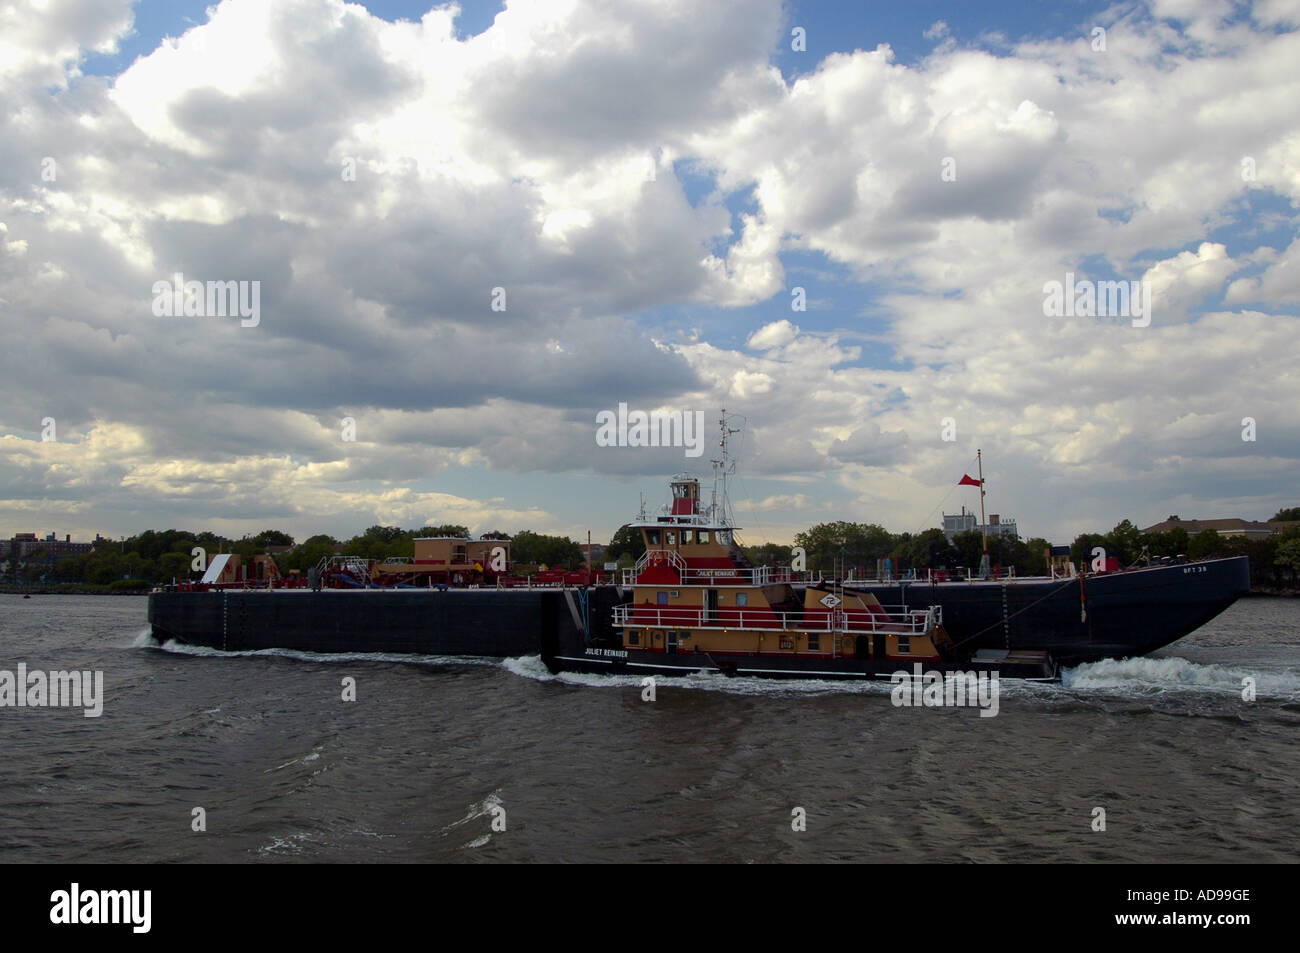 A tugboat hauls barges in NY Harbor - Stock Image